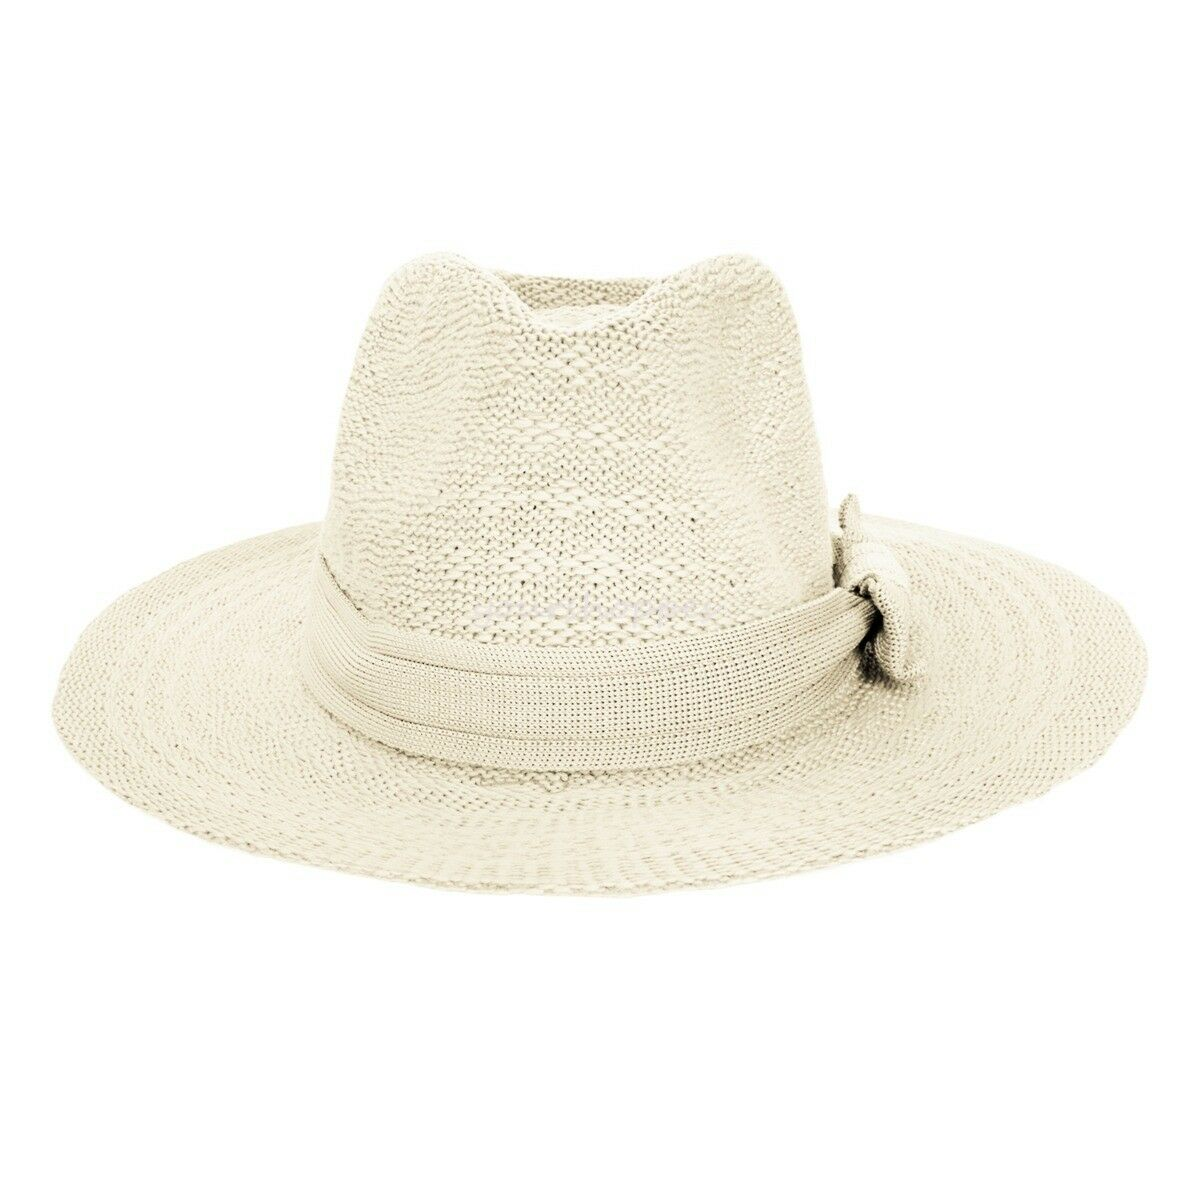 c6bfc9be82c Details about Vintage Women s Brim Floppy Straw Fedora Hat Summer Beach Sun  Cap With Bow Band